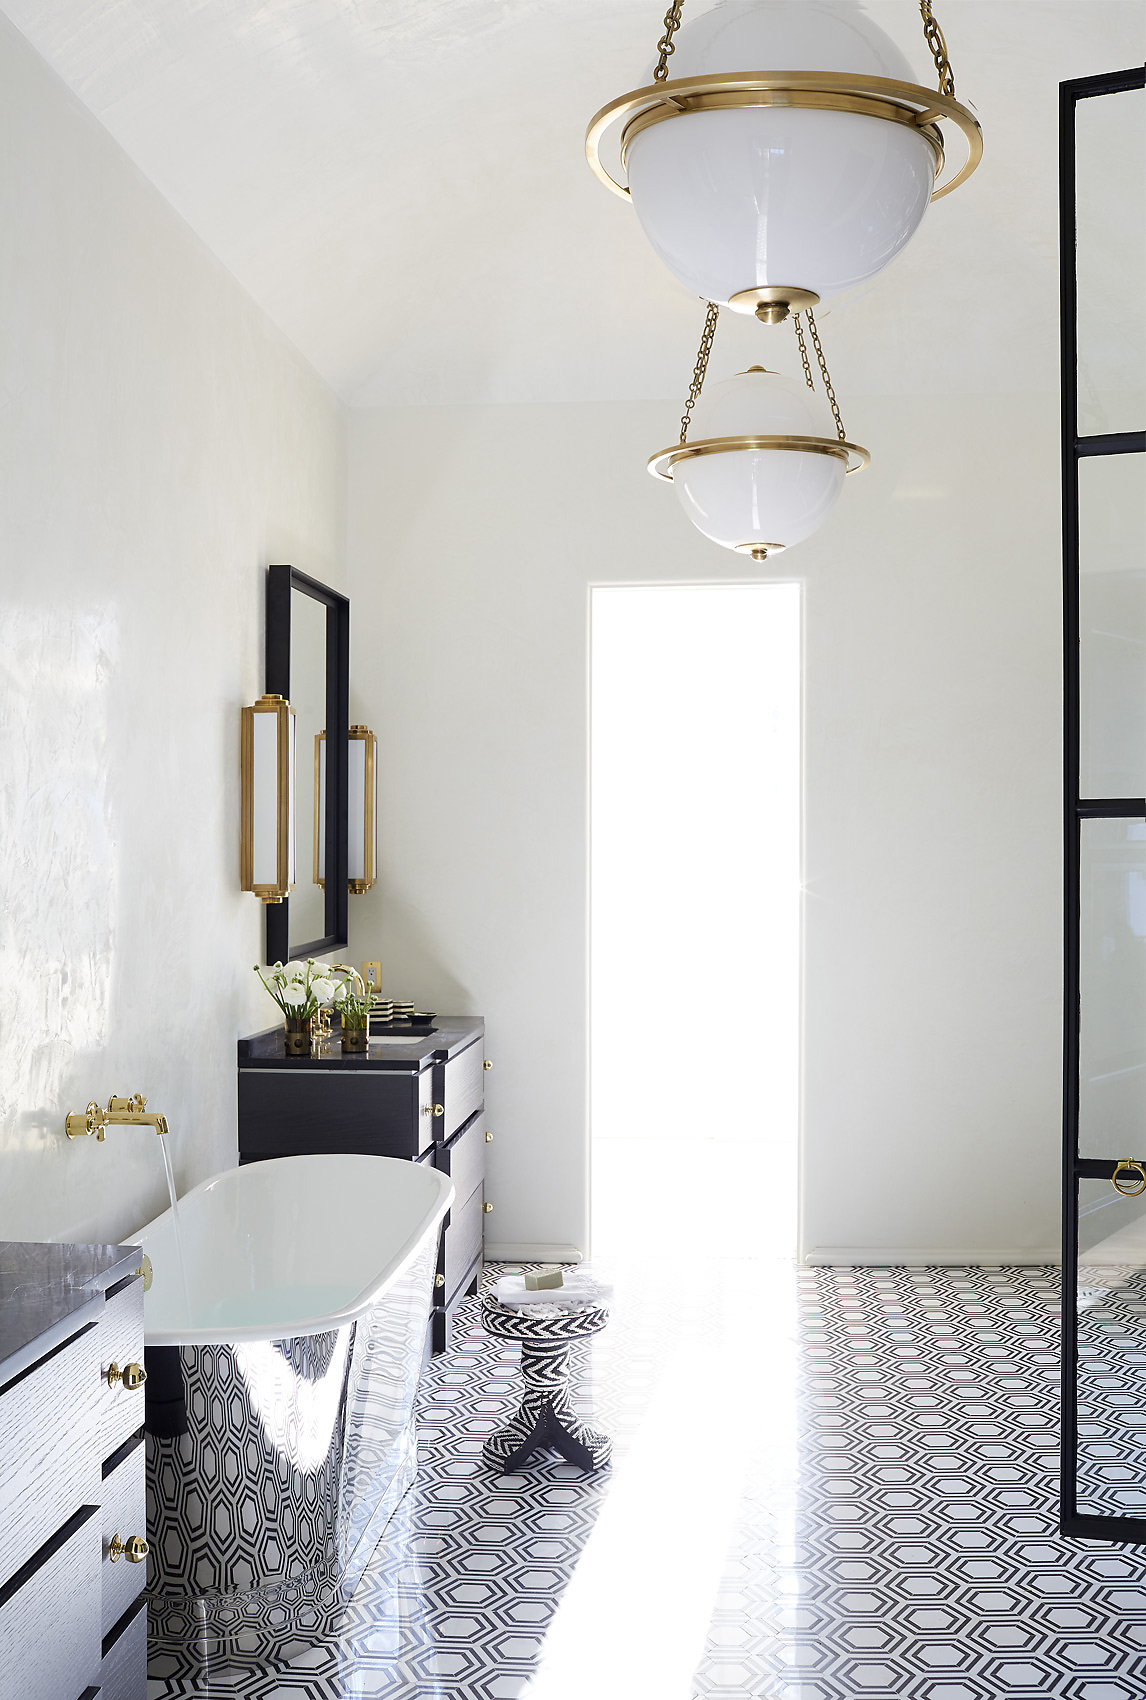 Melanie Turner Interiors uses Turkish tile in a  master bath, Mali Azima Photographer